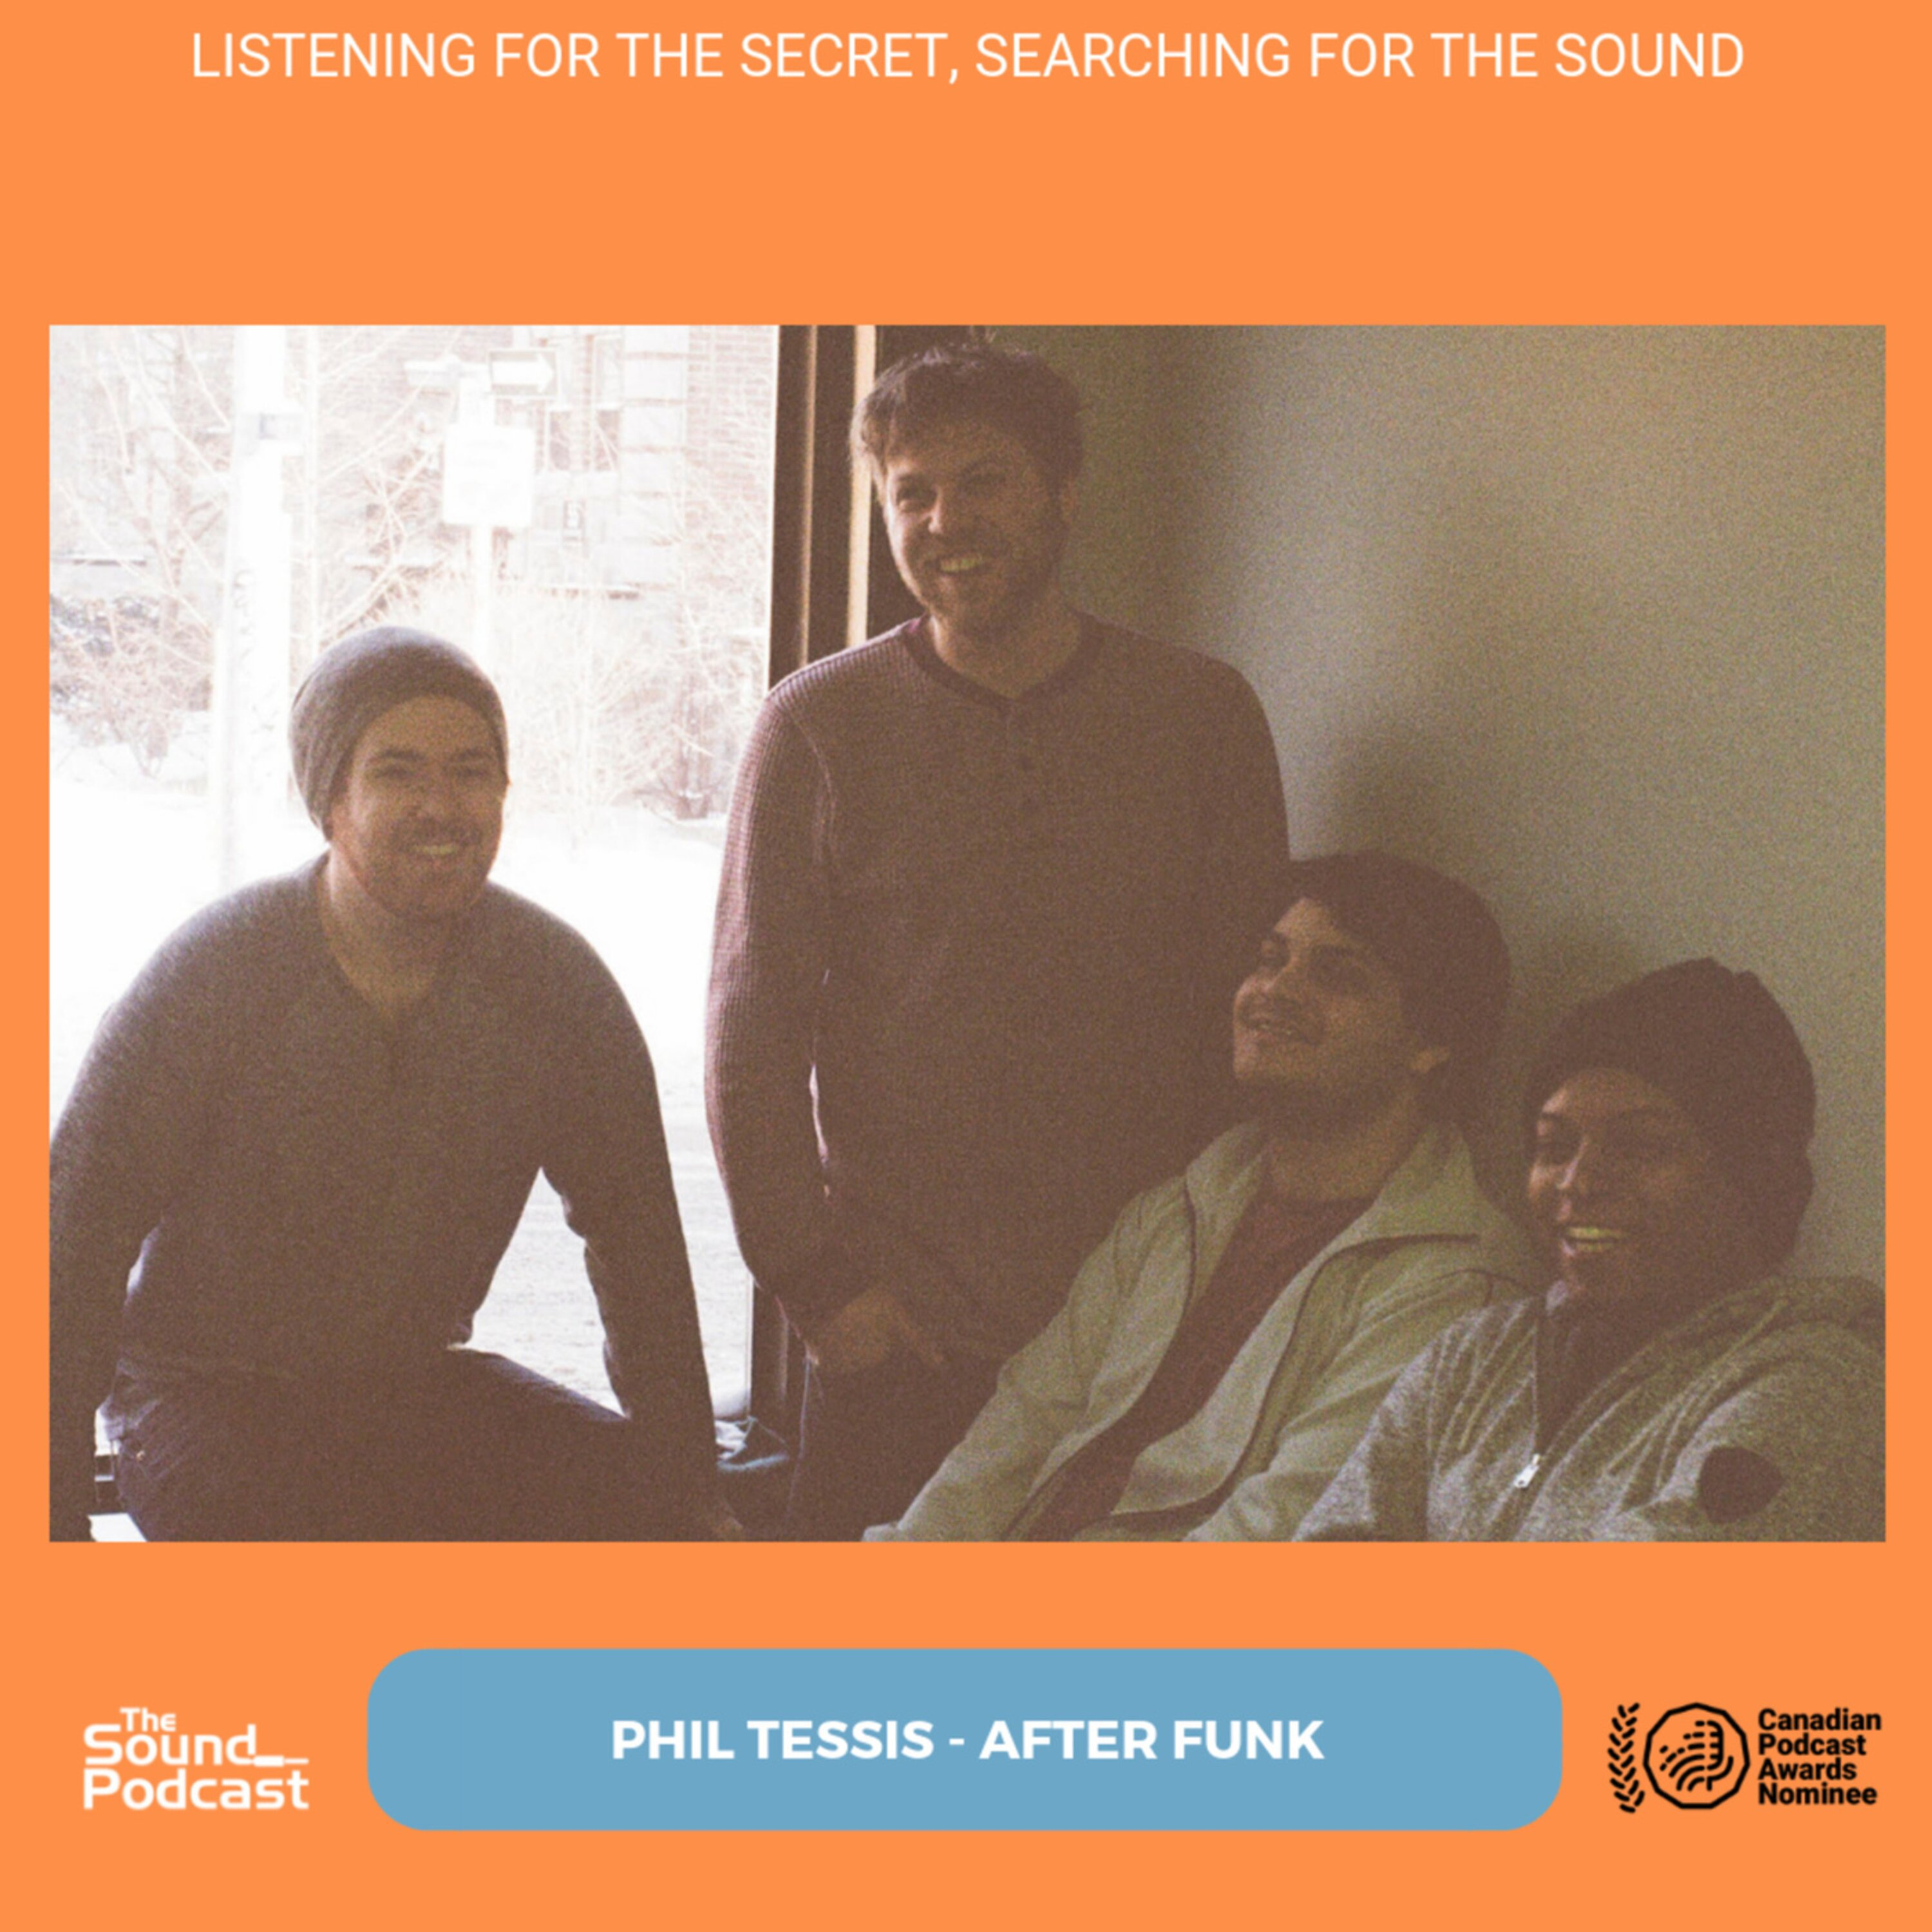 Episode 173: Phil Tessis - After Funk